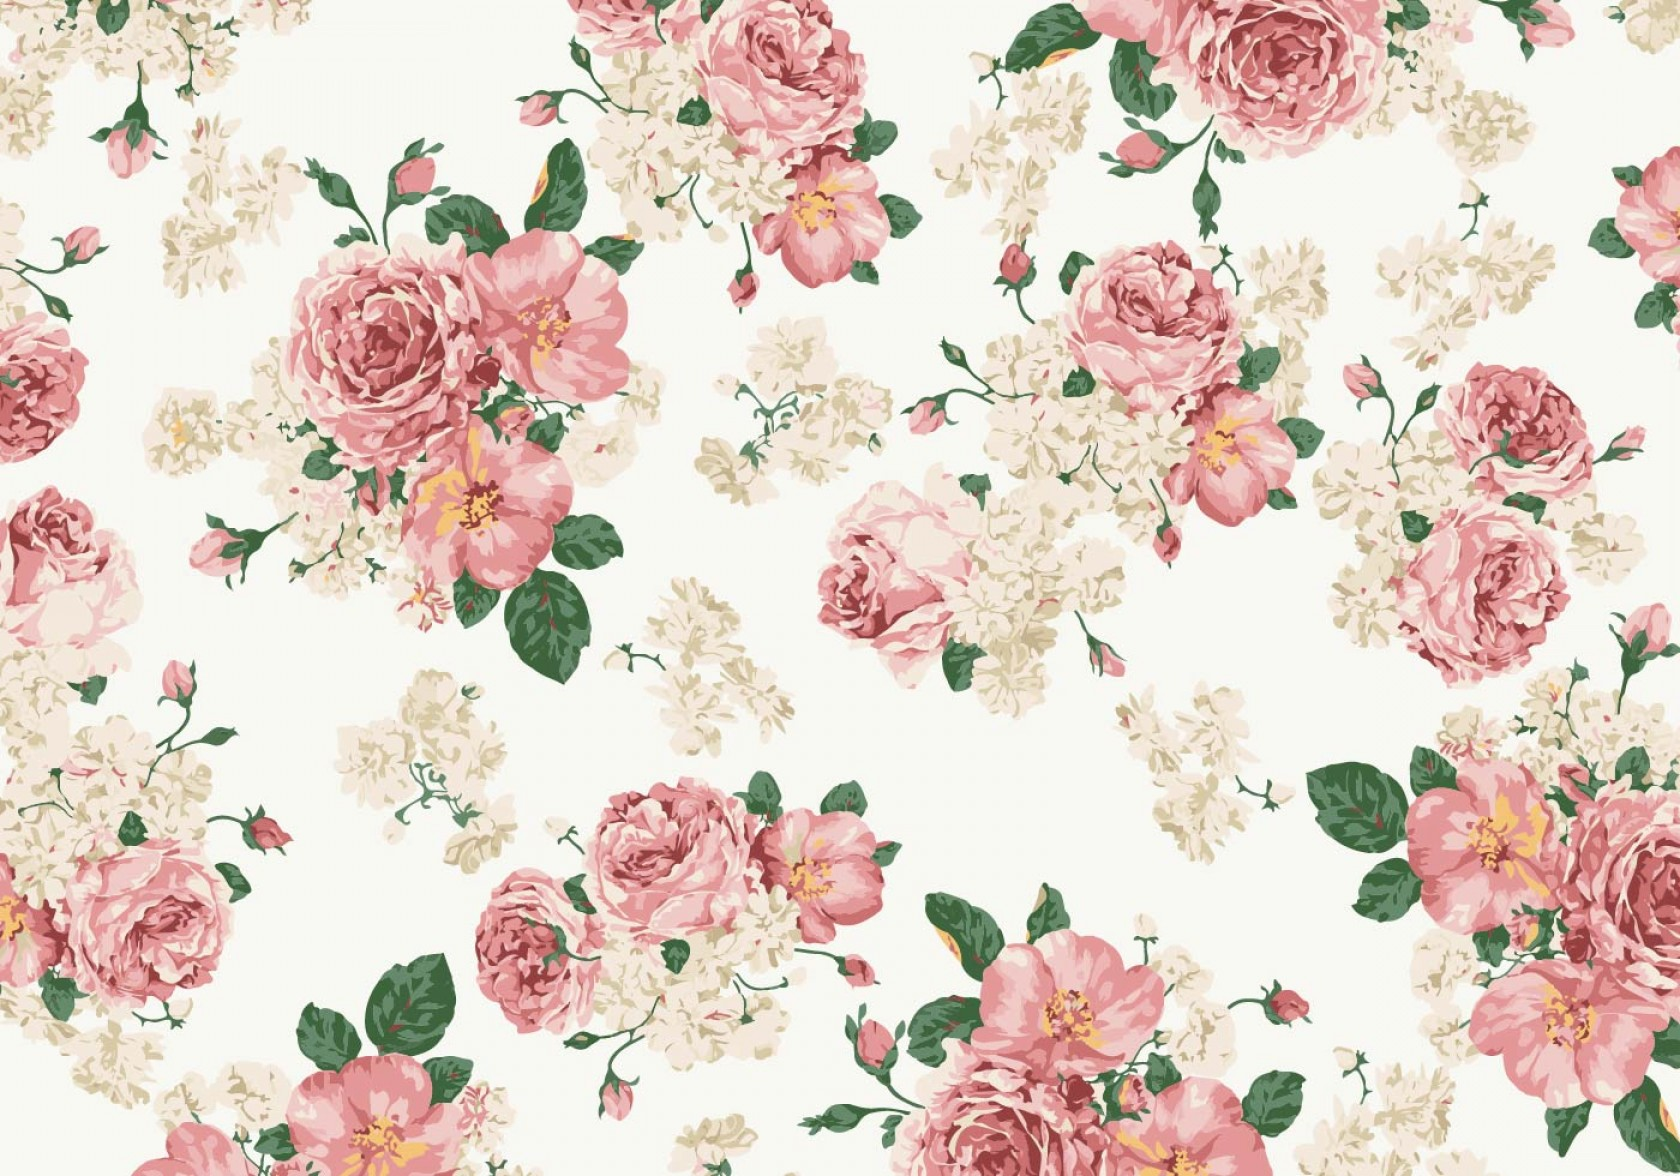 1680x1176 Vintage Pink And White Roses Vector Background Sohadacouri